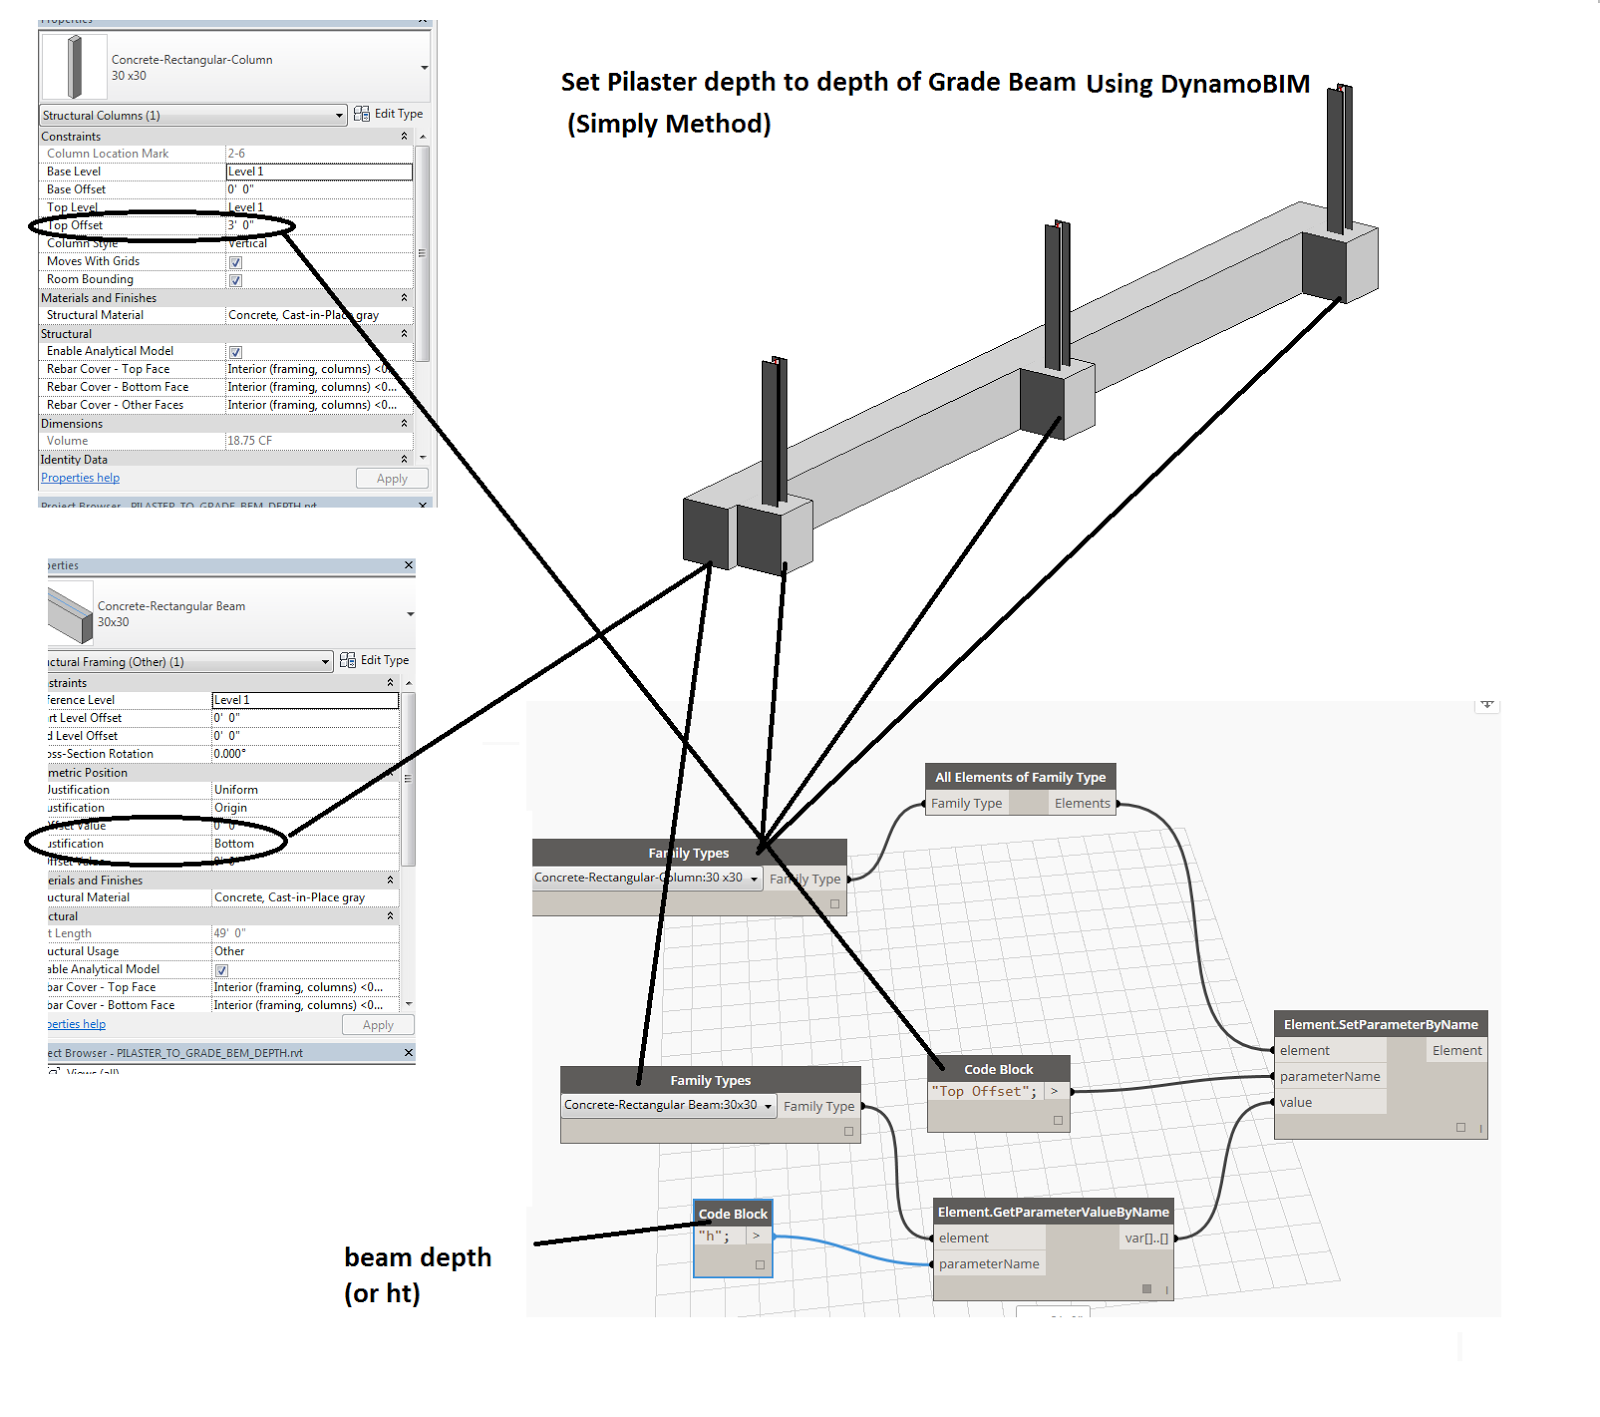 How to set Pilaster Height equal to Grade Beam depth using DynamoBIM (or how to drive an instance parameter with a type parameter in a loadable family)